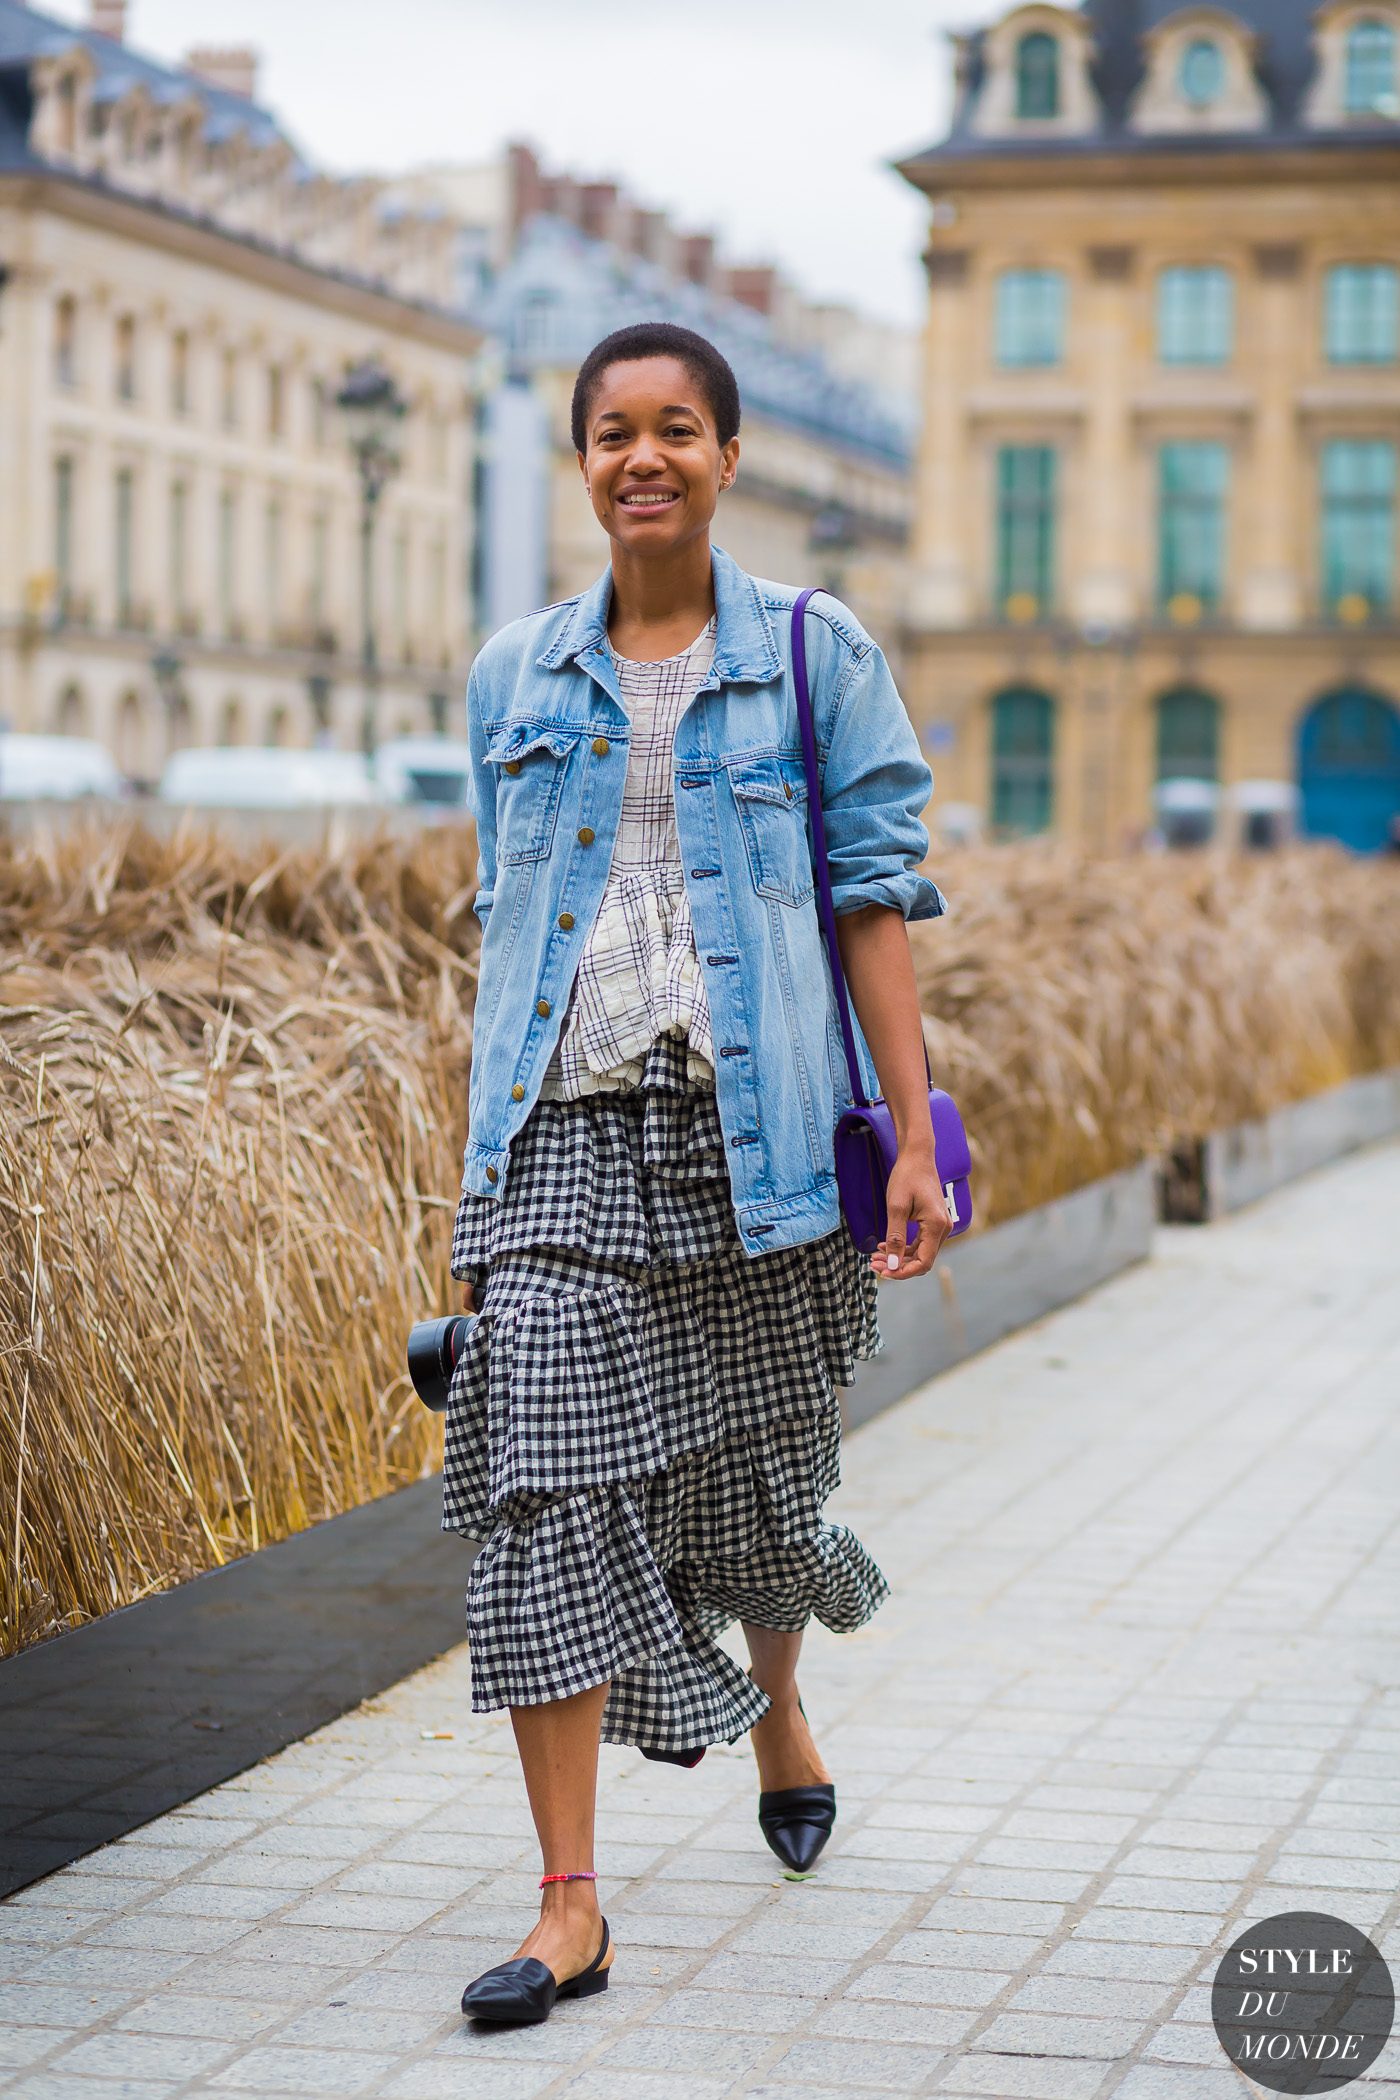 Tamu McPherson Street Style Street Fashion Streetsnaps by STYLEDUMONDE Street Style Fashion Photography